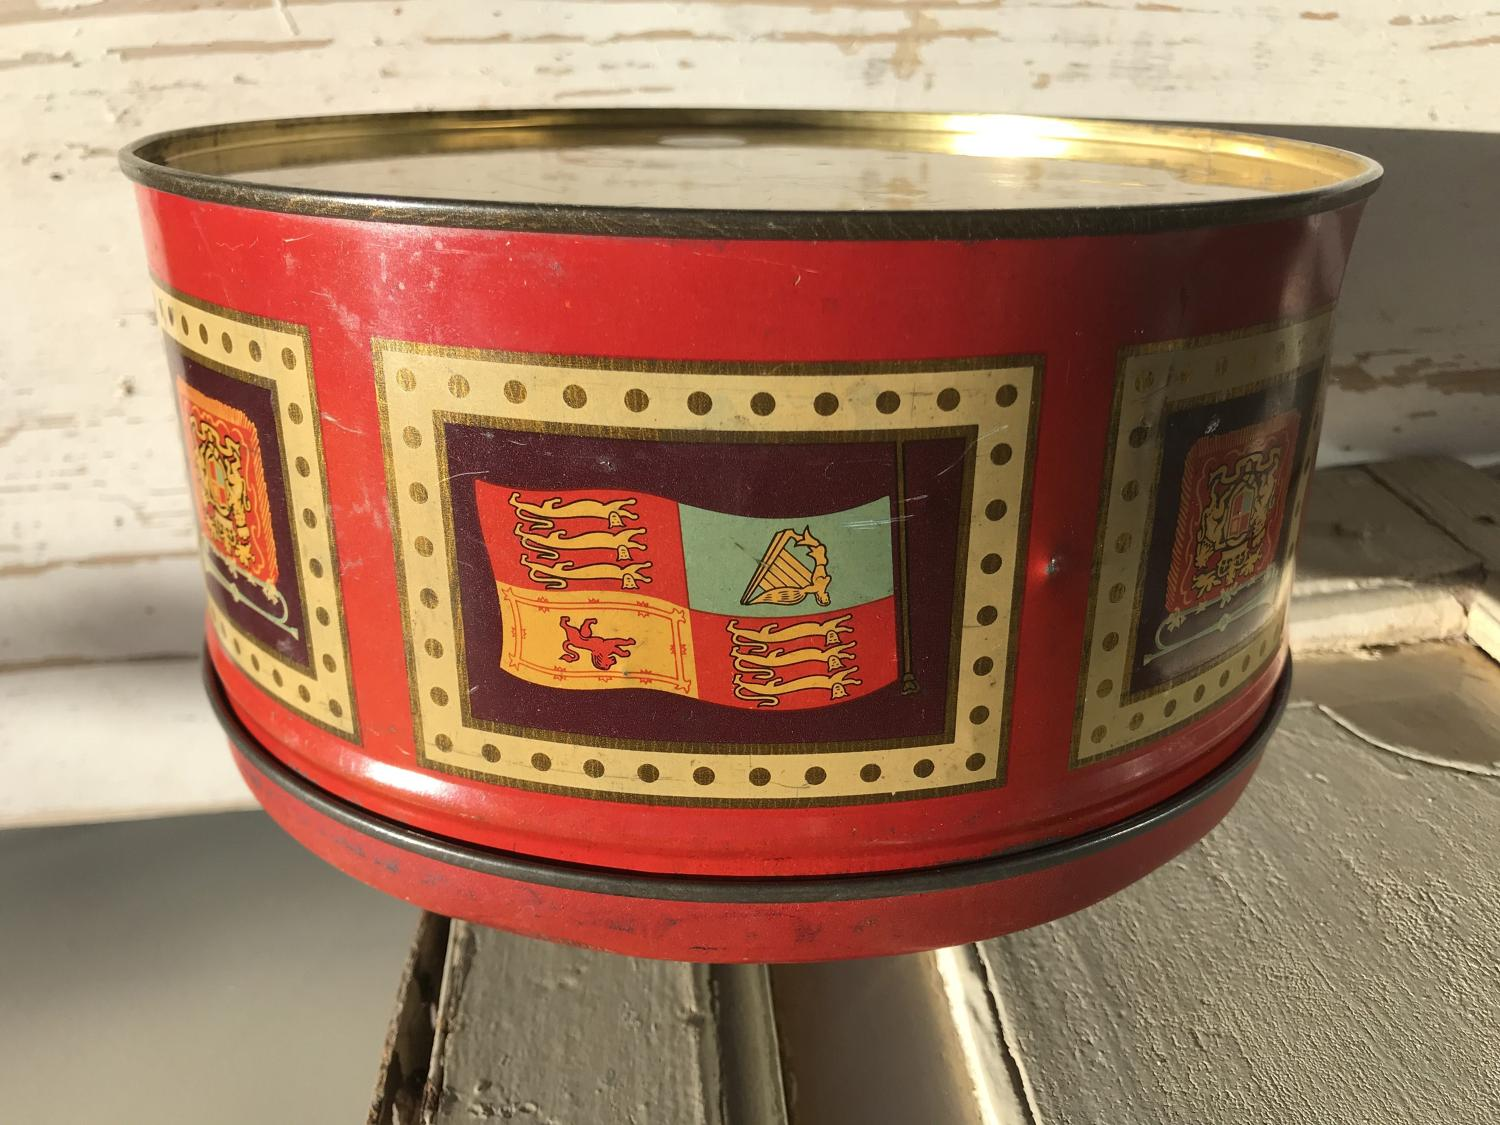 EIIR Biscuit Tin